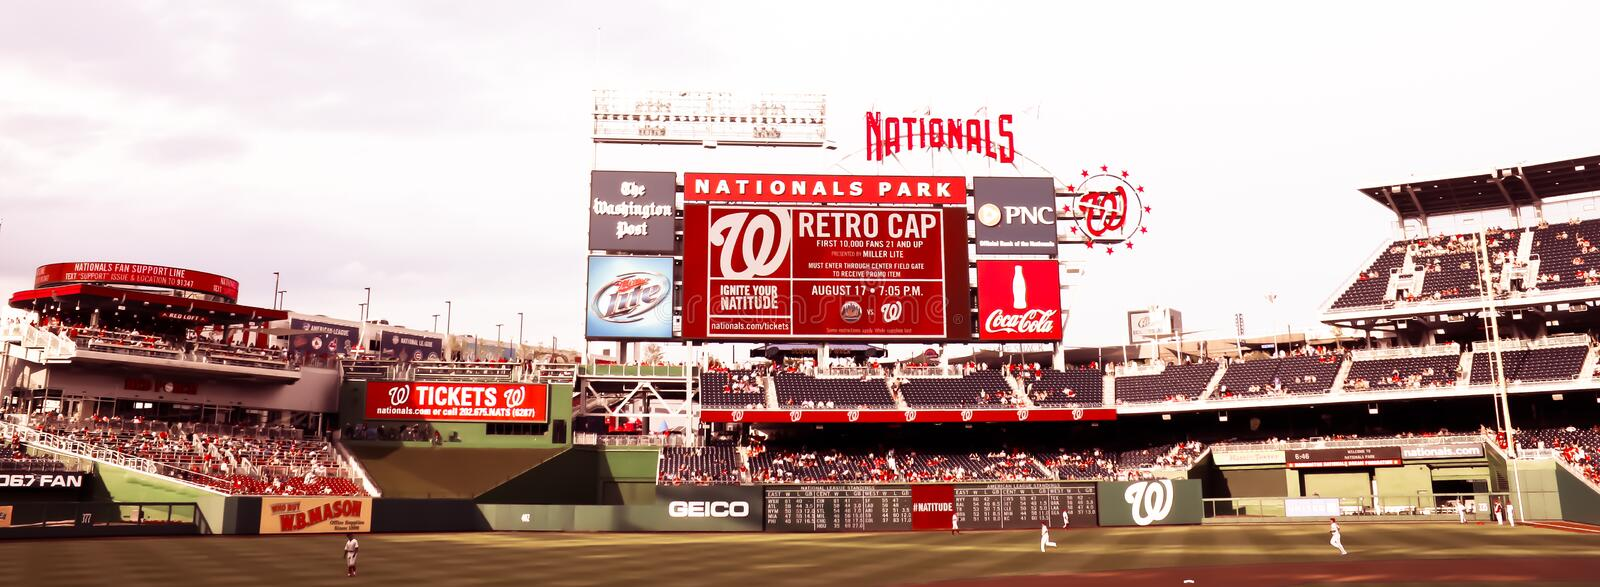 Download Nationals Park Washington, DC Editorial Stock Image - Image of baseball, national: 25984284